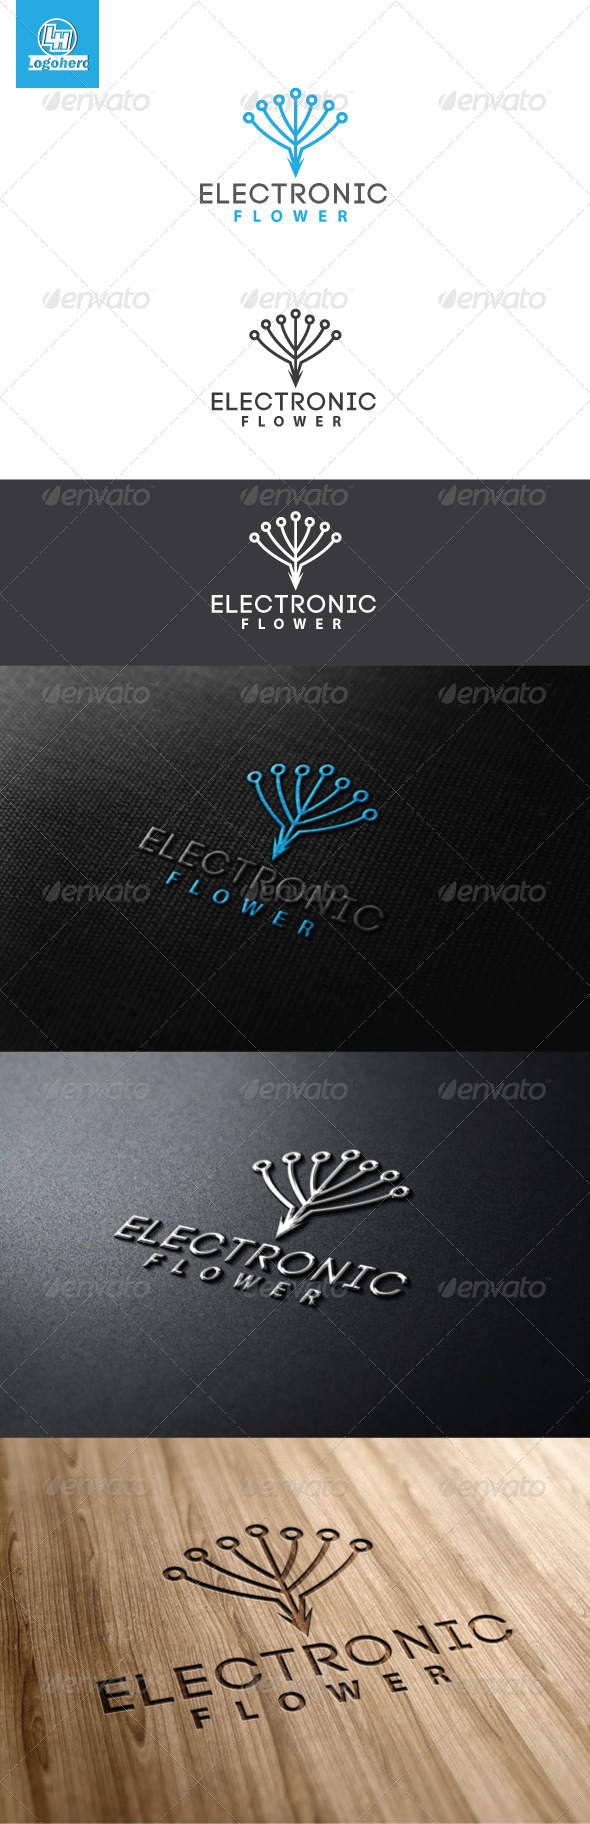 Electronic Flower Logo Template